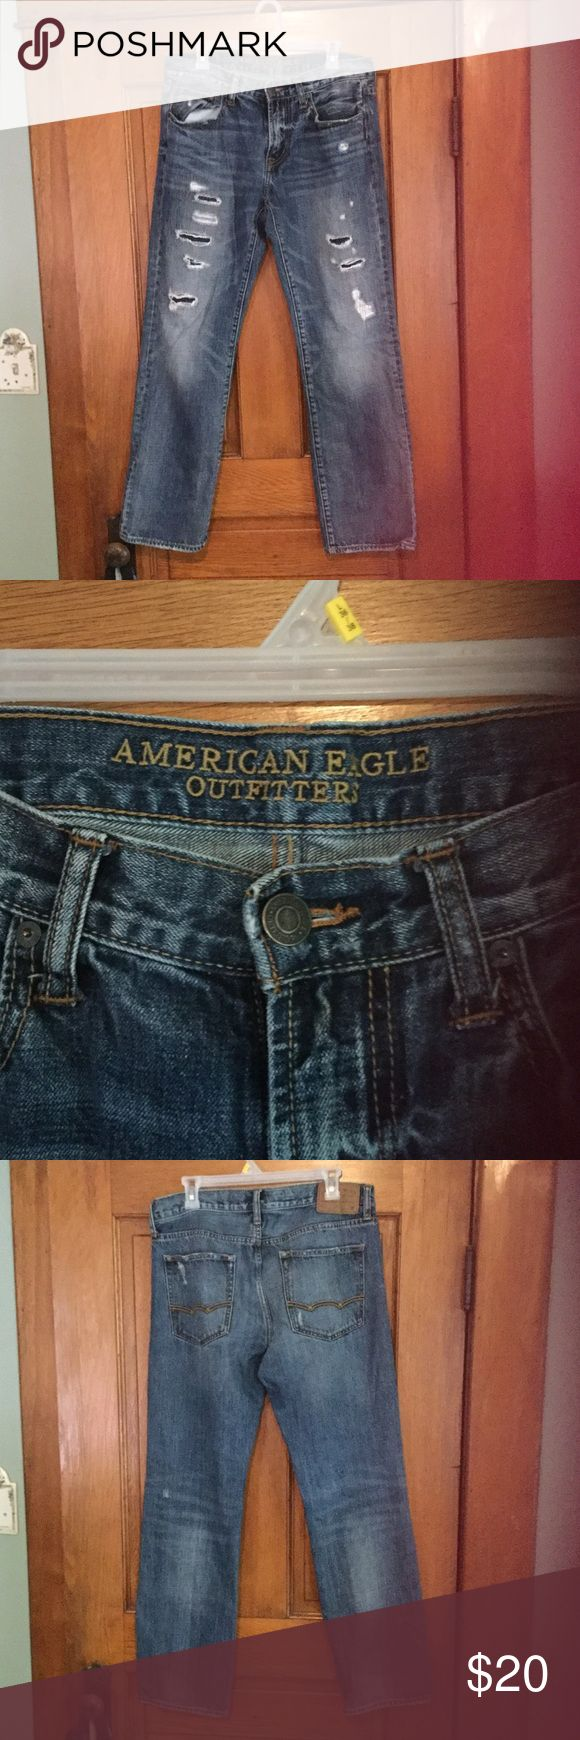 American Eagle men's jeans 32x32 Men's American Eagle jeans size 32x32. Original Straight. All cuts and holes are supposed to be there. Great condition!! American Eagle Outfitters Jeans Straight